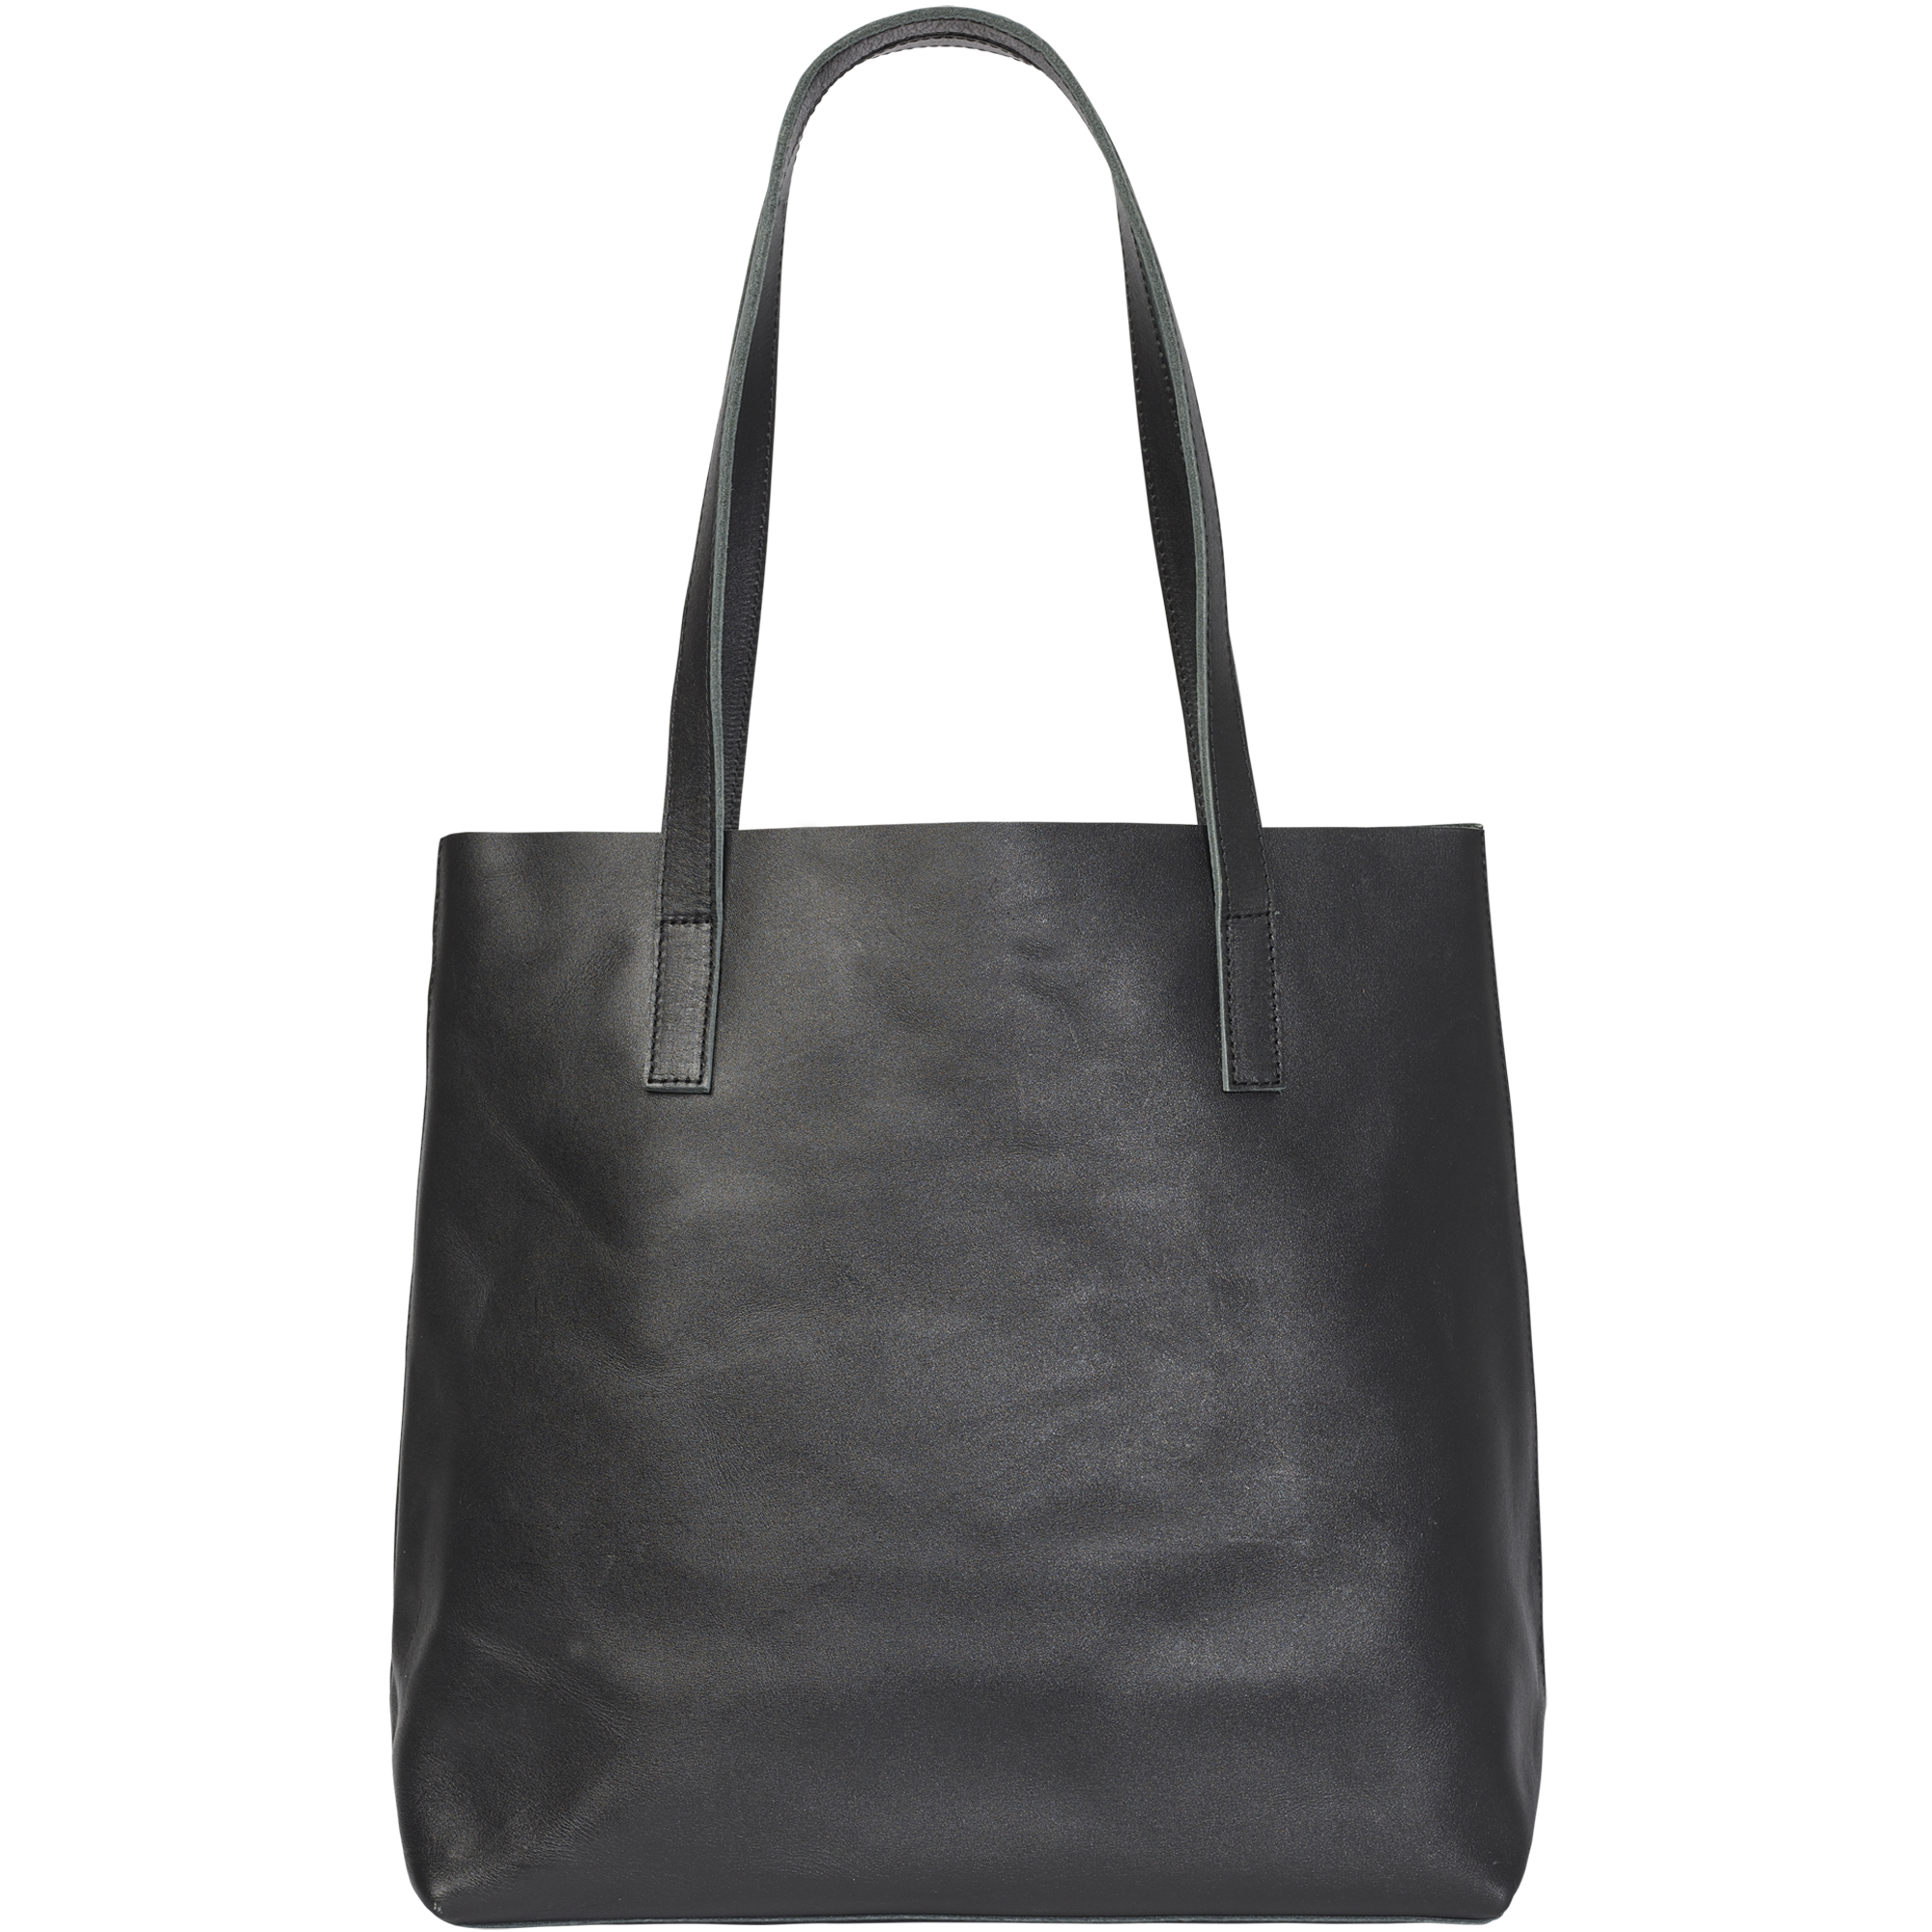 Handbag Black Tote Bag